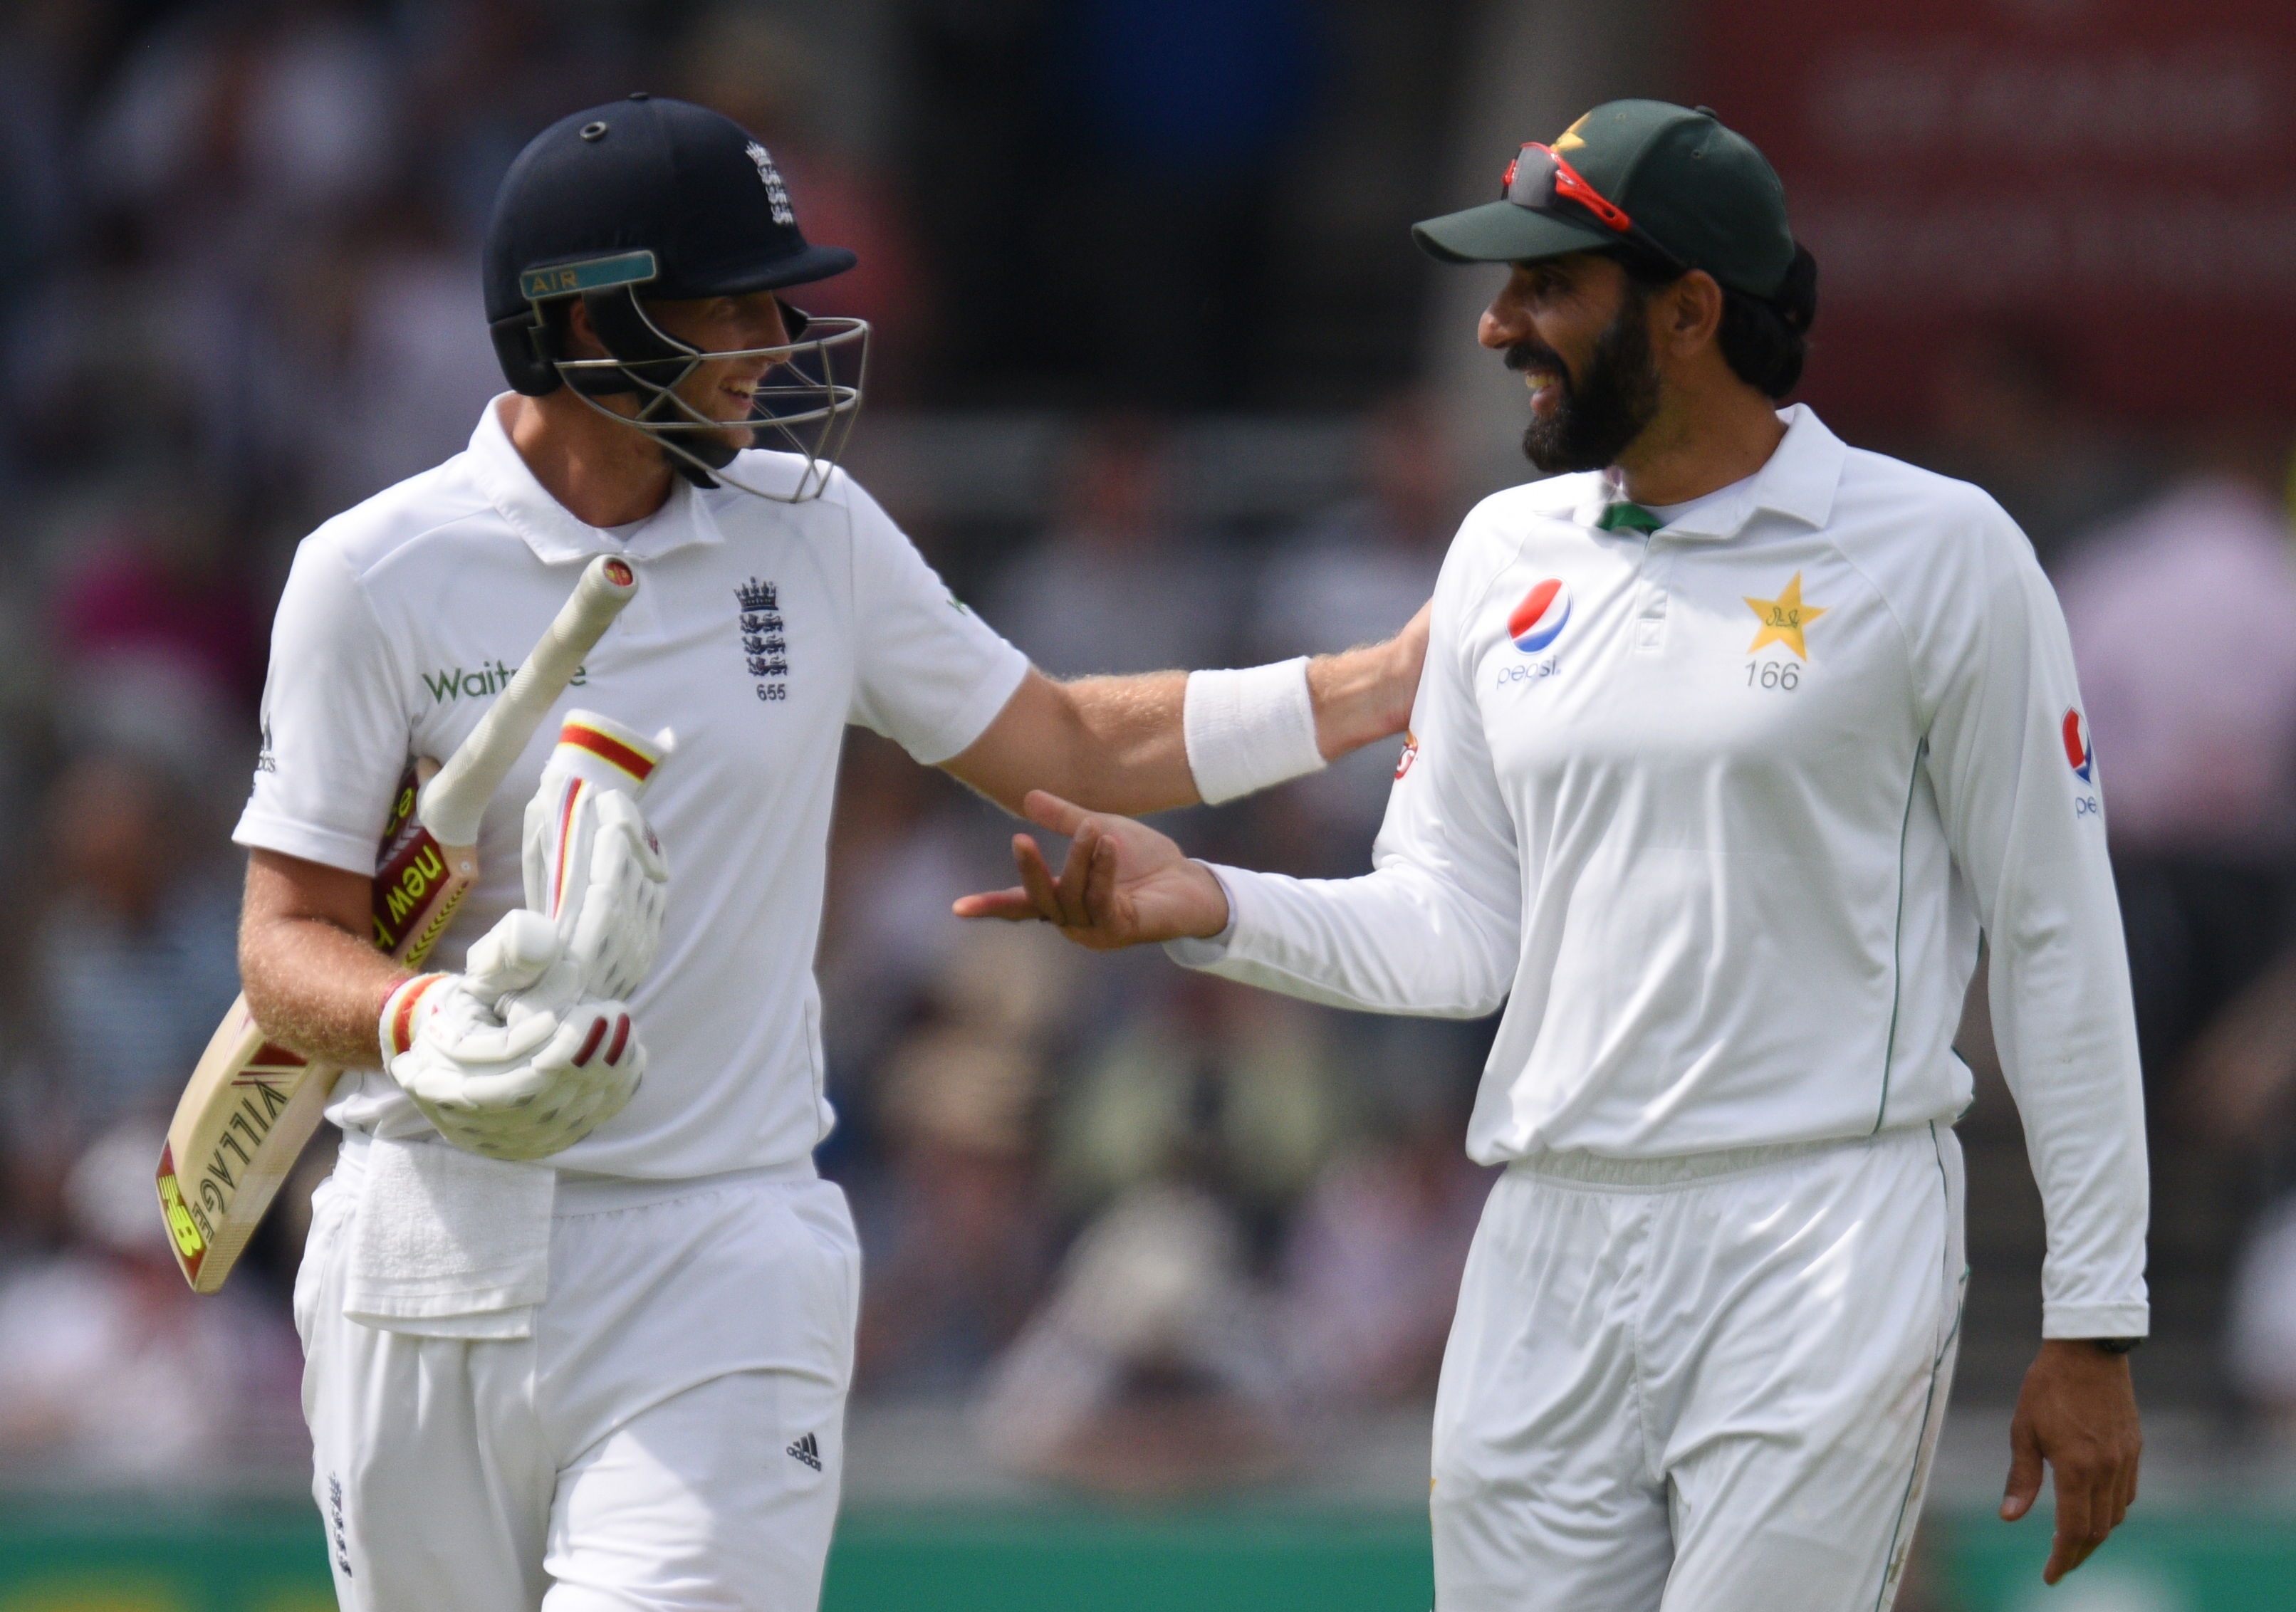 England's Joe Root chats to Pakistan's captain Misbah-ul-Haq (R) as they walk off for tea on the second day of the second Test cricket match between England and Pakistan at Old Trafford Cricket Ground in Manchester, England on July 23, 2016. / AFP PHOTO / OLI SCARFF